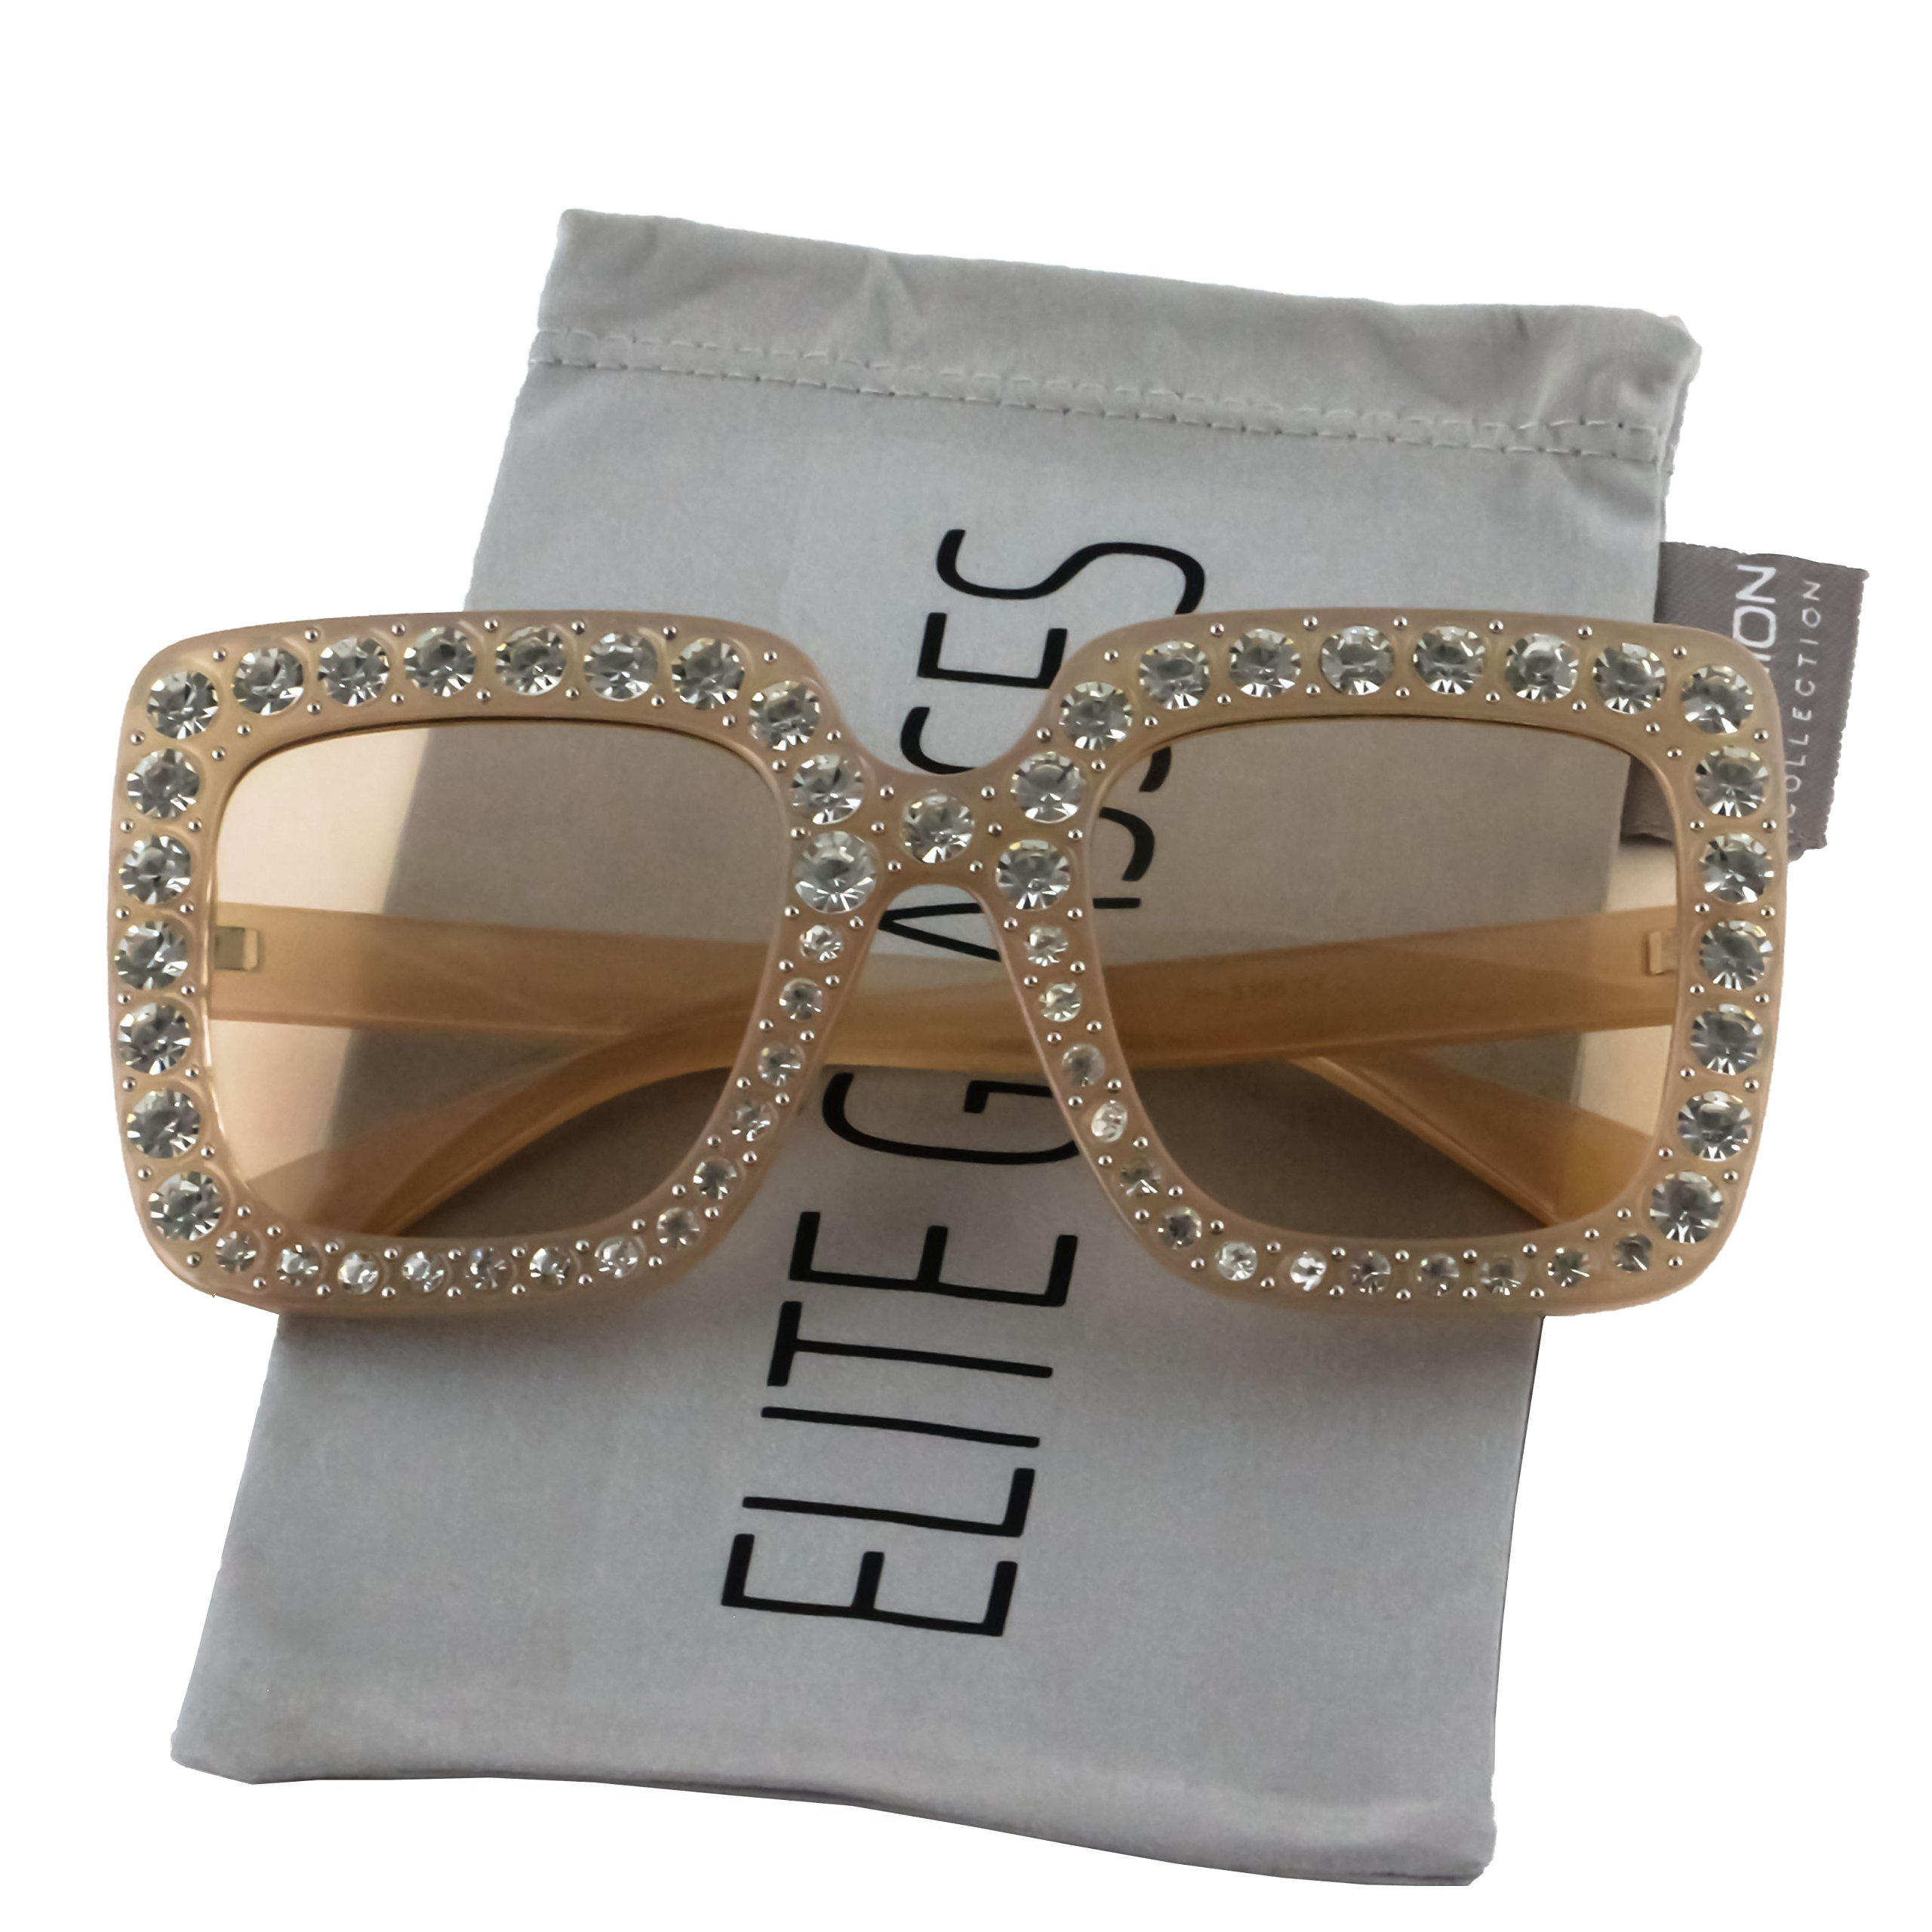 Elite Oversized Square Frame Bling Rhinestone Crystal Brand Designer Sunglasses For Women 2018 (Peach, 52) by Elite Glasses (Image #1)